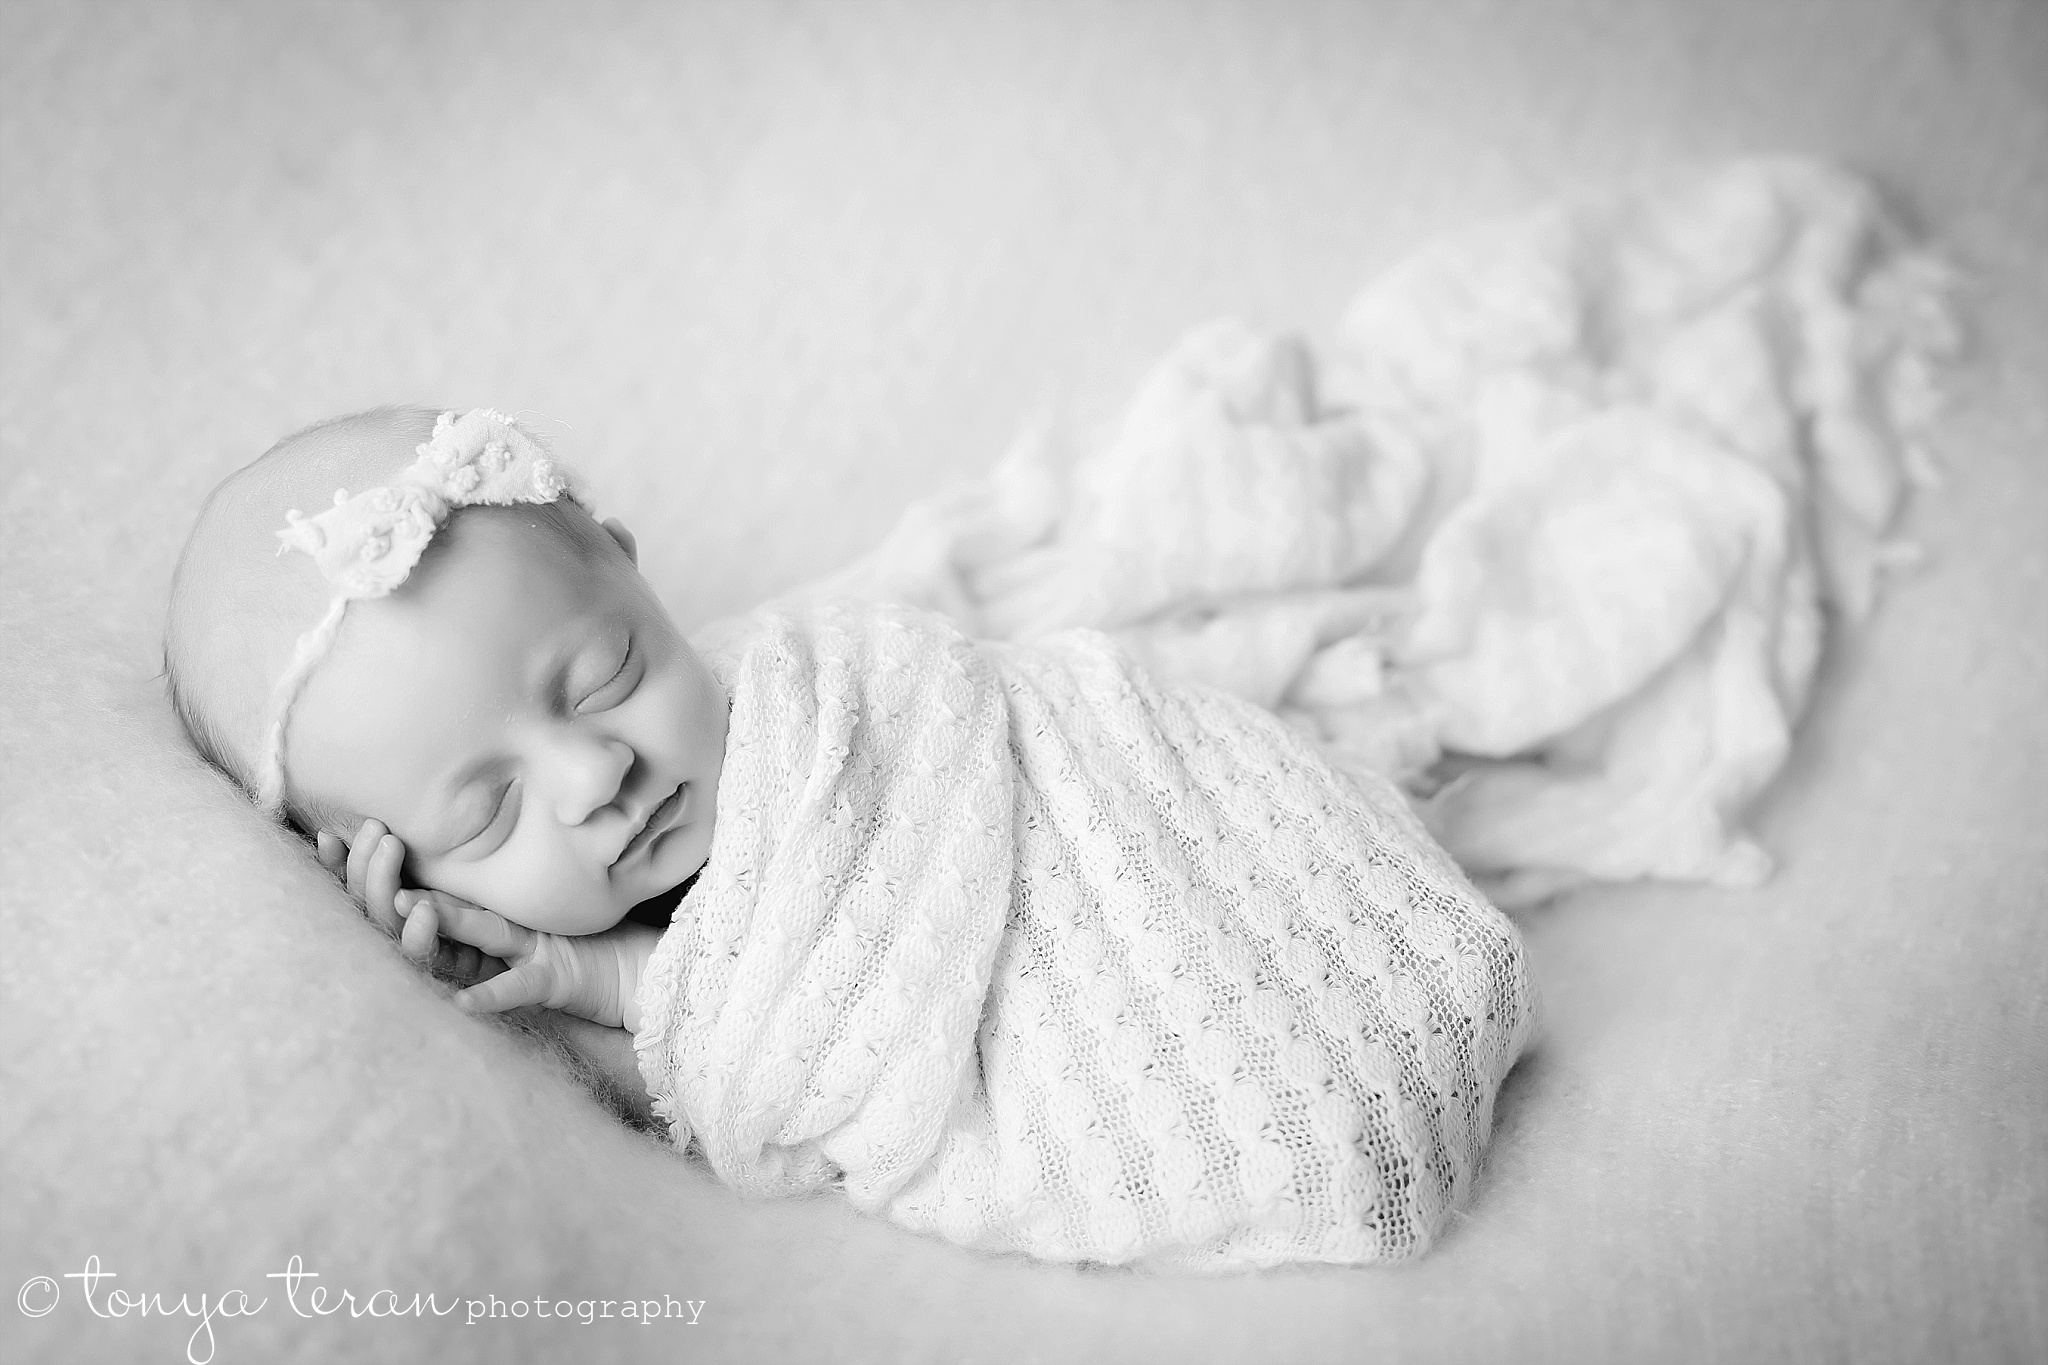 Newborn Photo Session | Tonya Teran Photography, Bethesda, MD Newborn, Baby, and Family Photographer